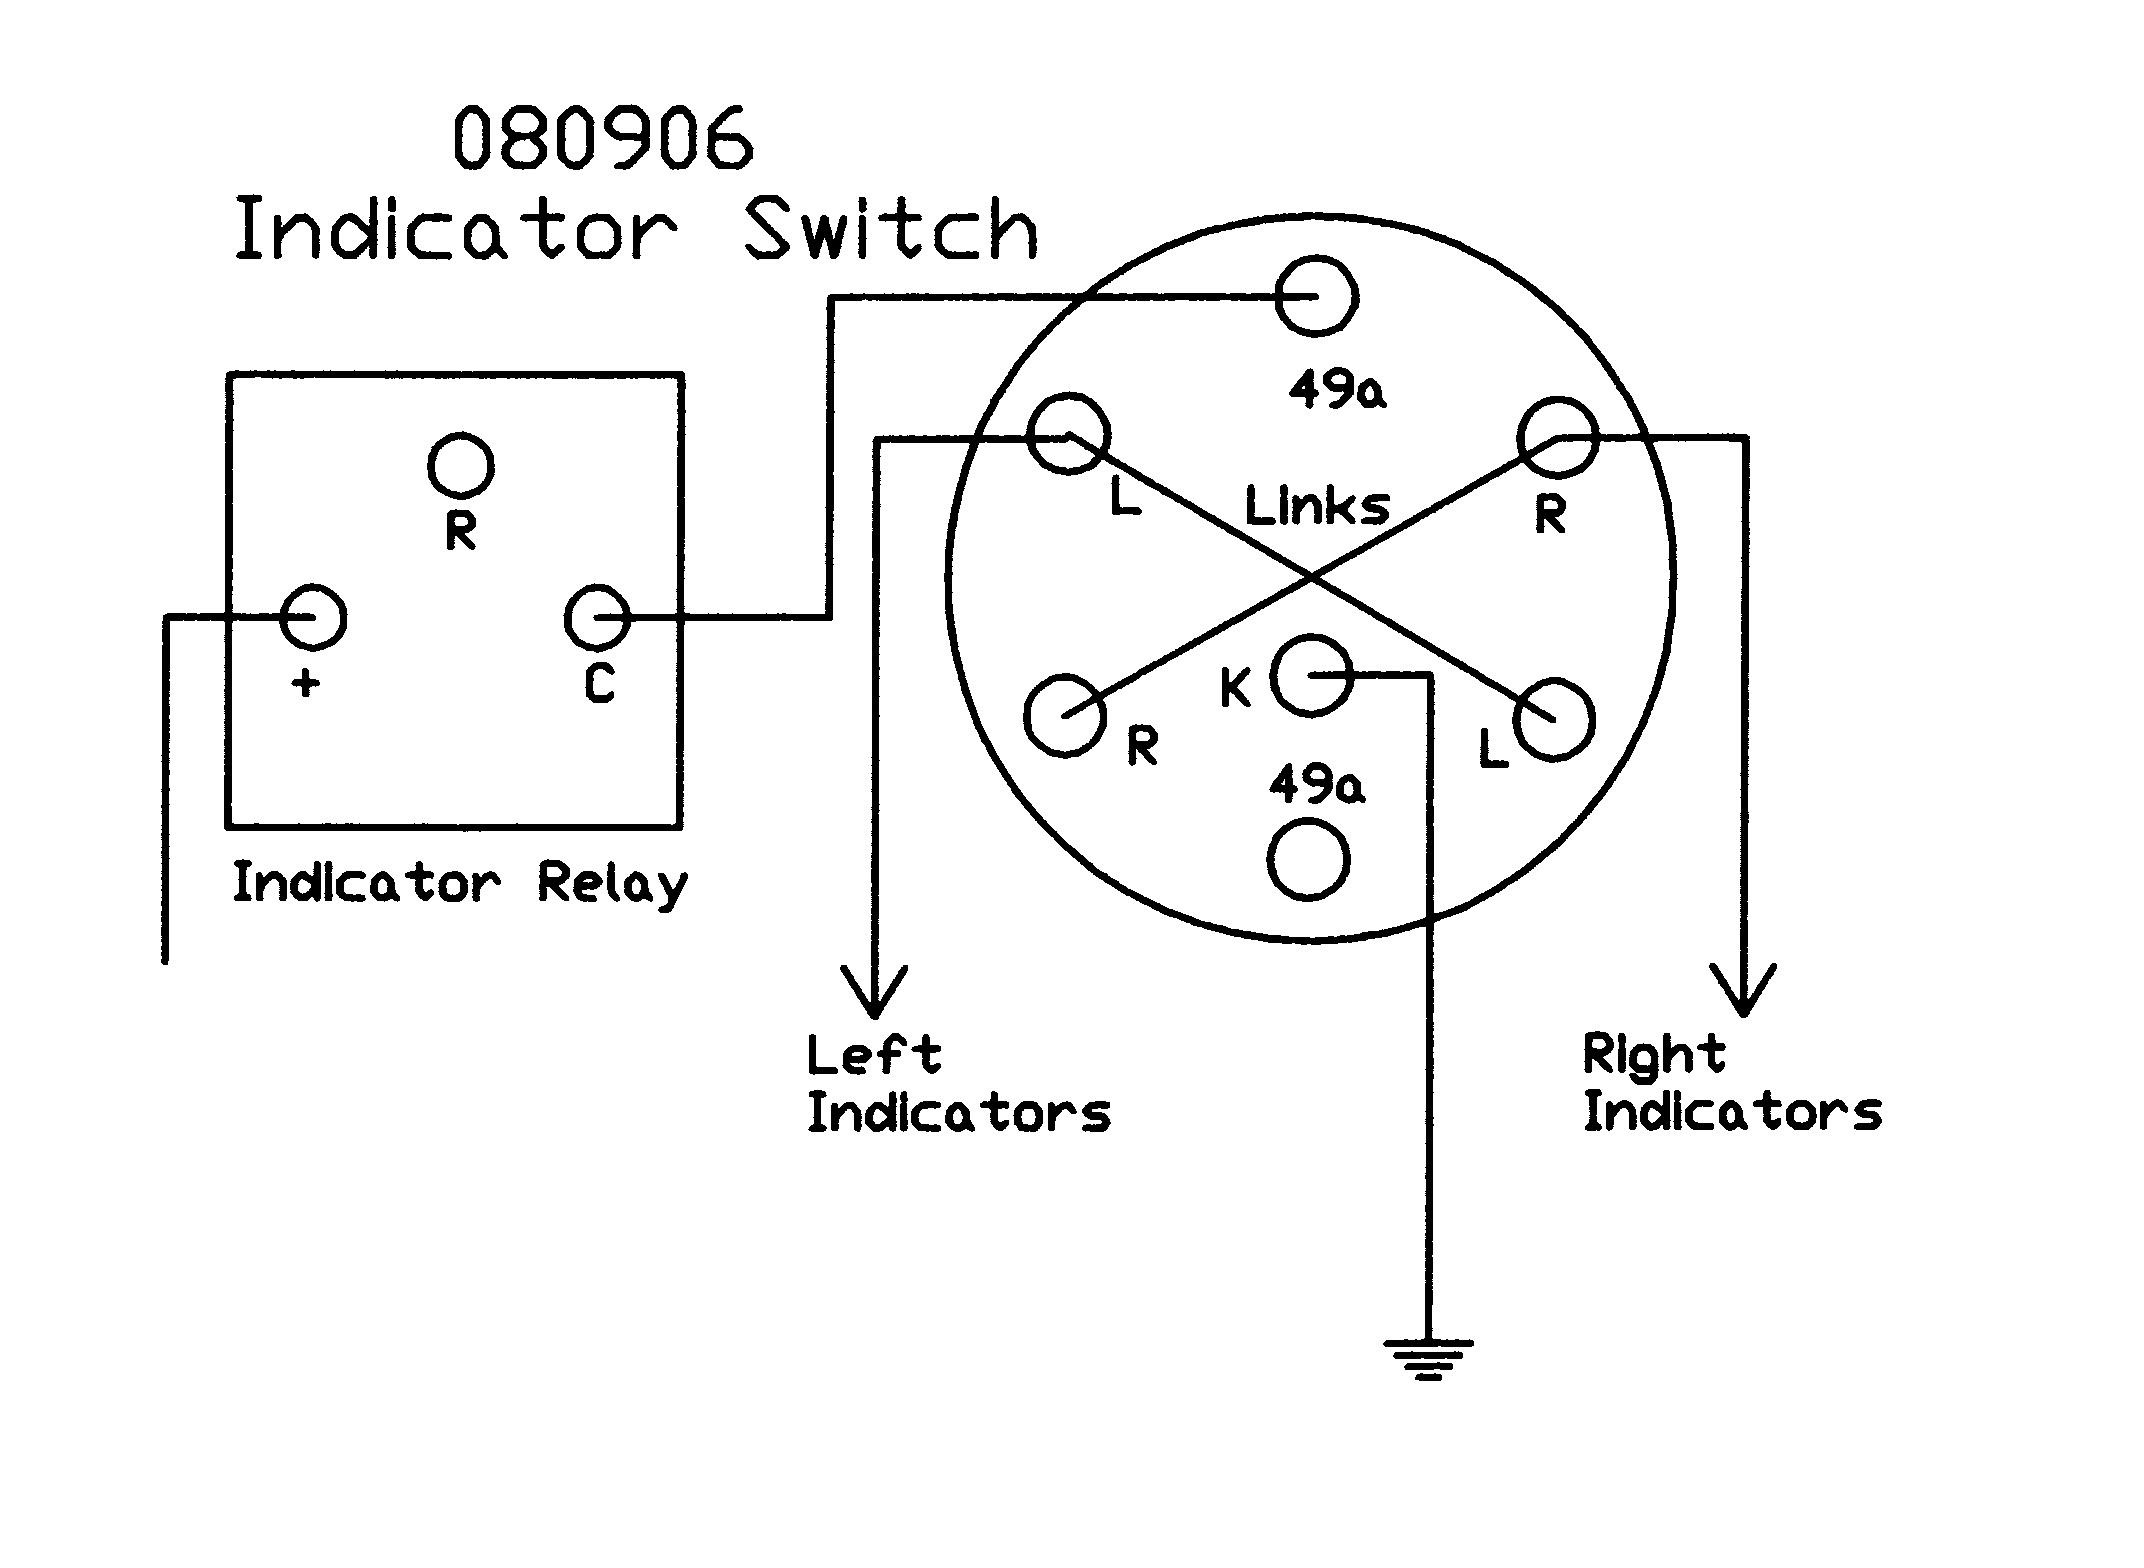 Rotary Switch Black Plastic Lever And Integral Red Warning Lamp Ignition Wiring Schematic 080906 Diagram